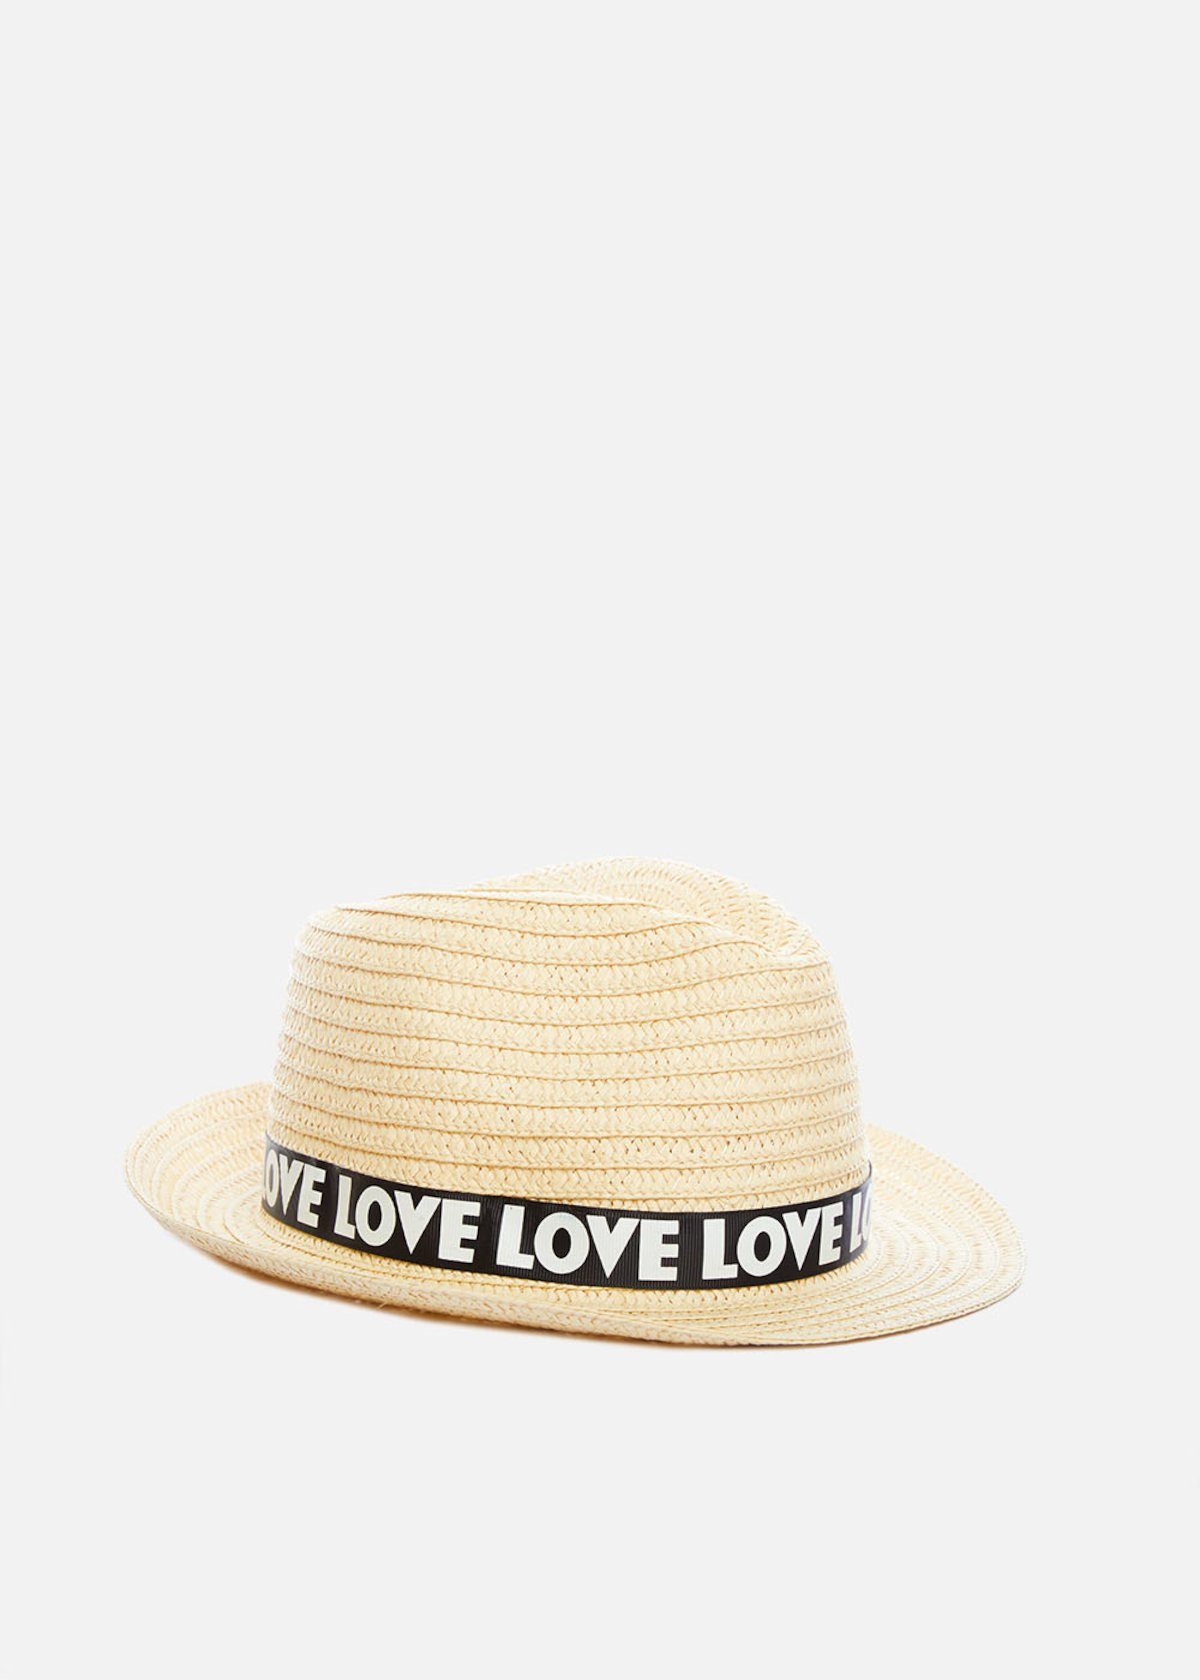 Paper hat natural color Craig con fascia stampa love - Natural